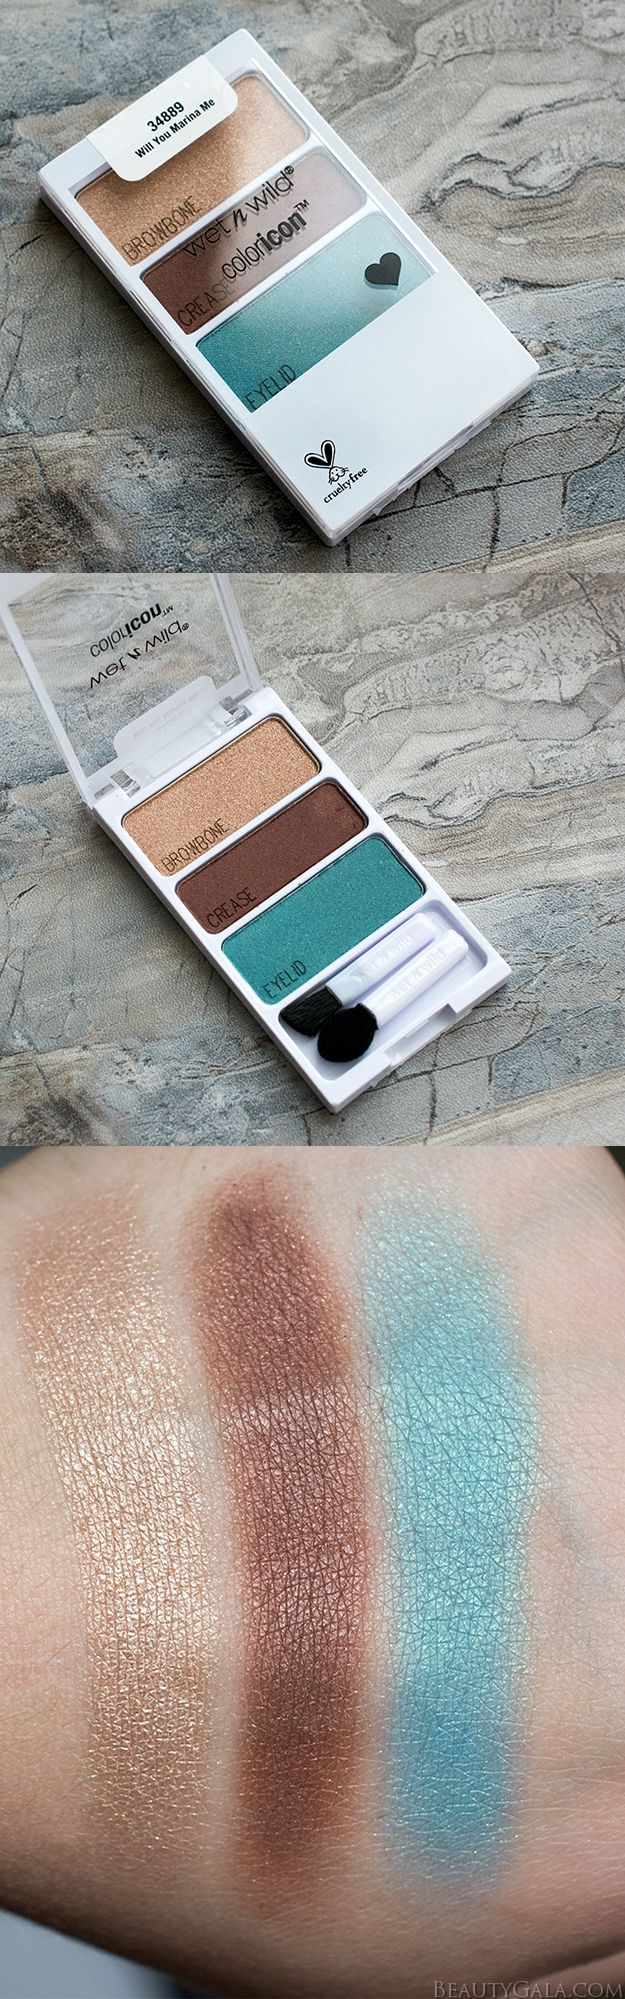 Wet n Wild Spring 2017 Collection Swatches and Review // FULL Collection